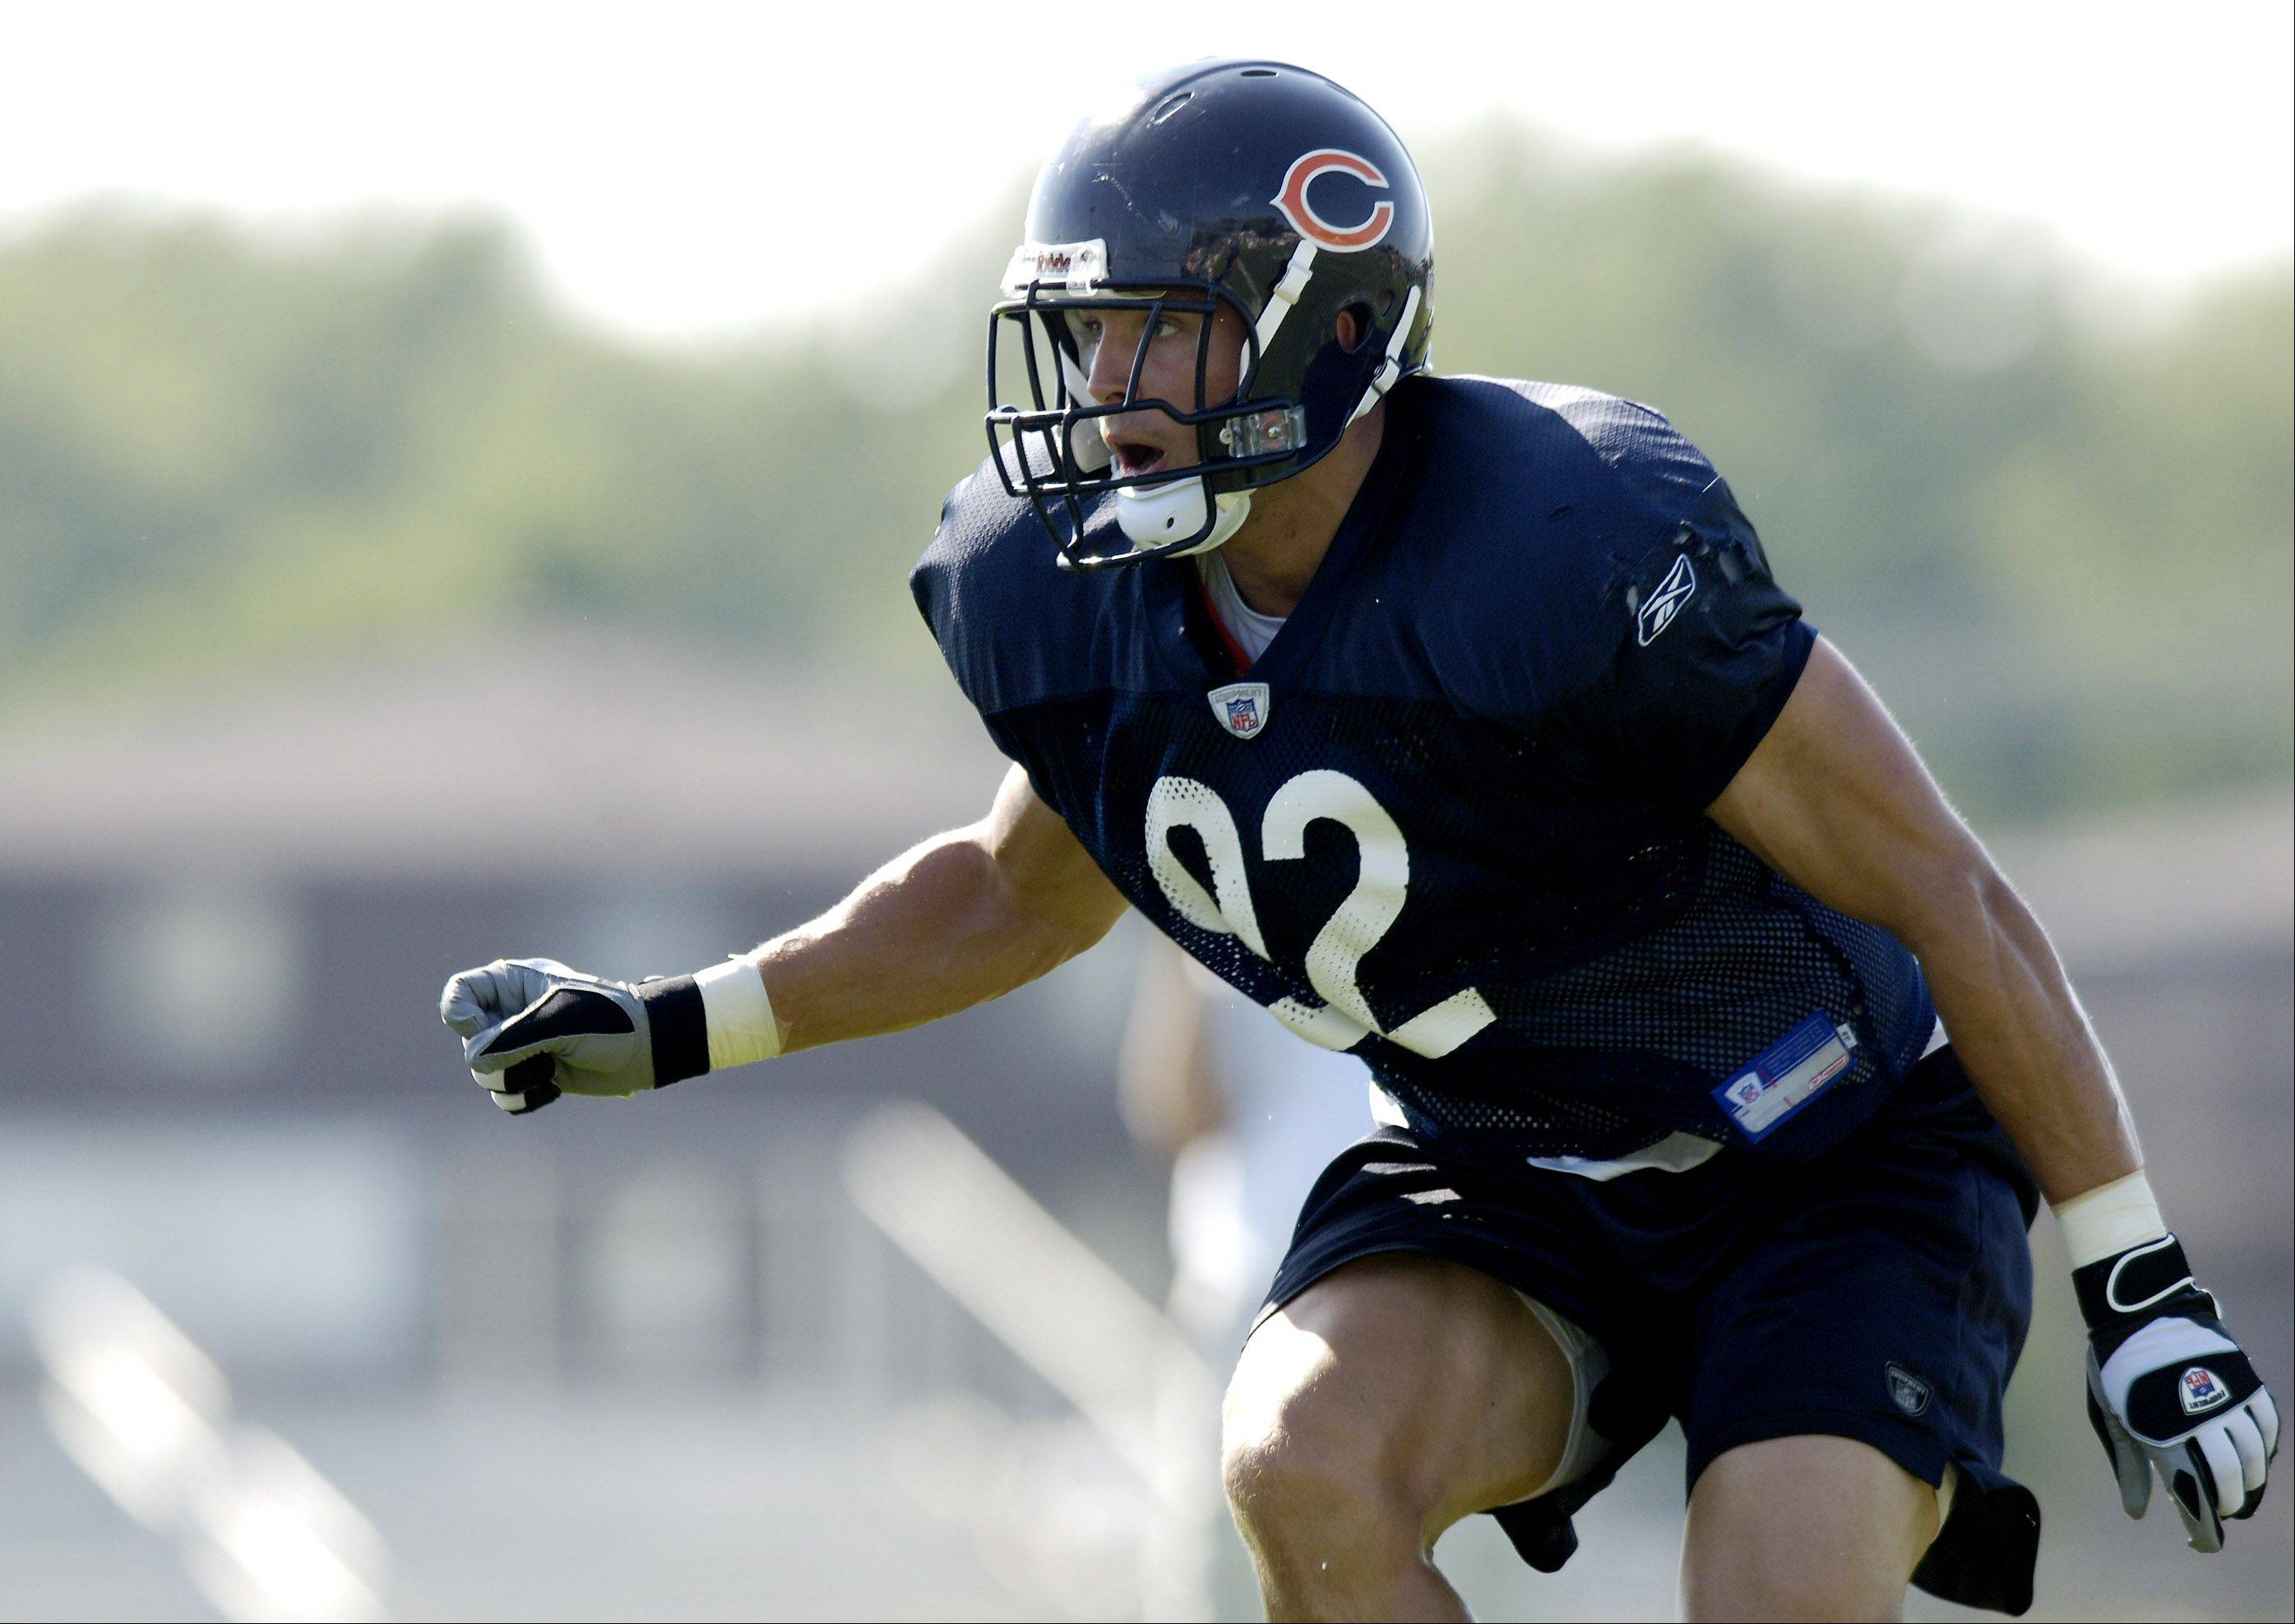 Chicago Bears linebacker Hunter Hillenmeyer wrote lawmakers a letter this week asking them to limit tackling. Hillenmeyer's career ended after a third concussion.